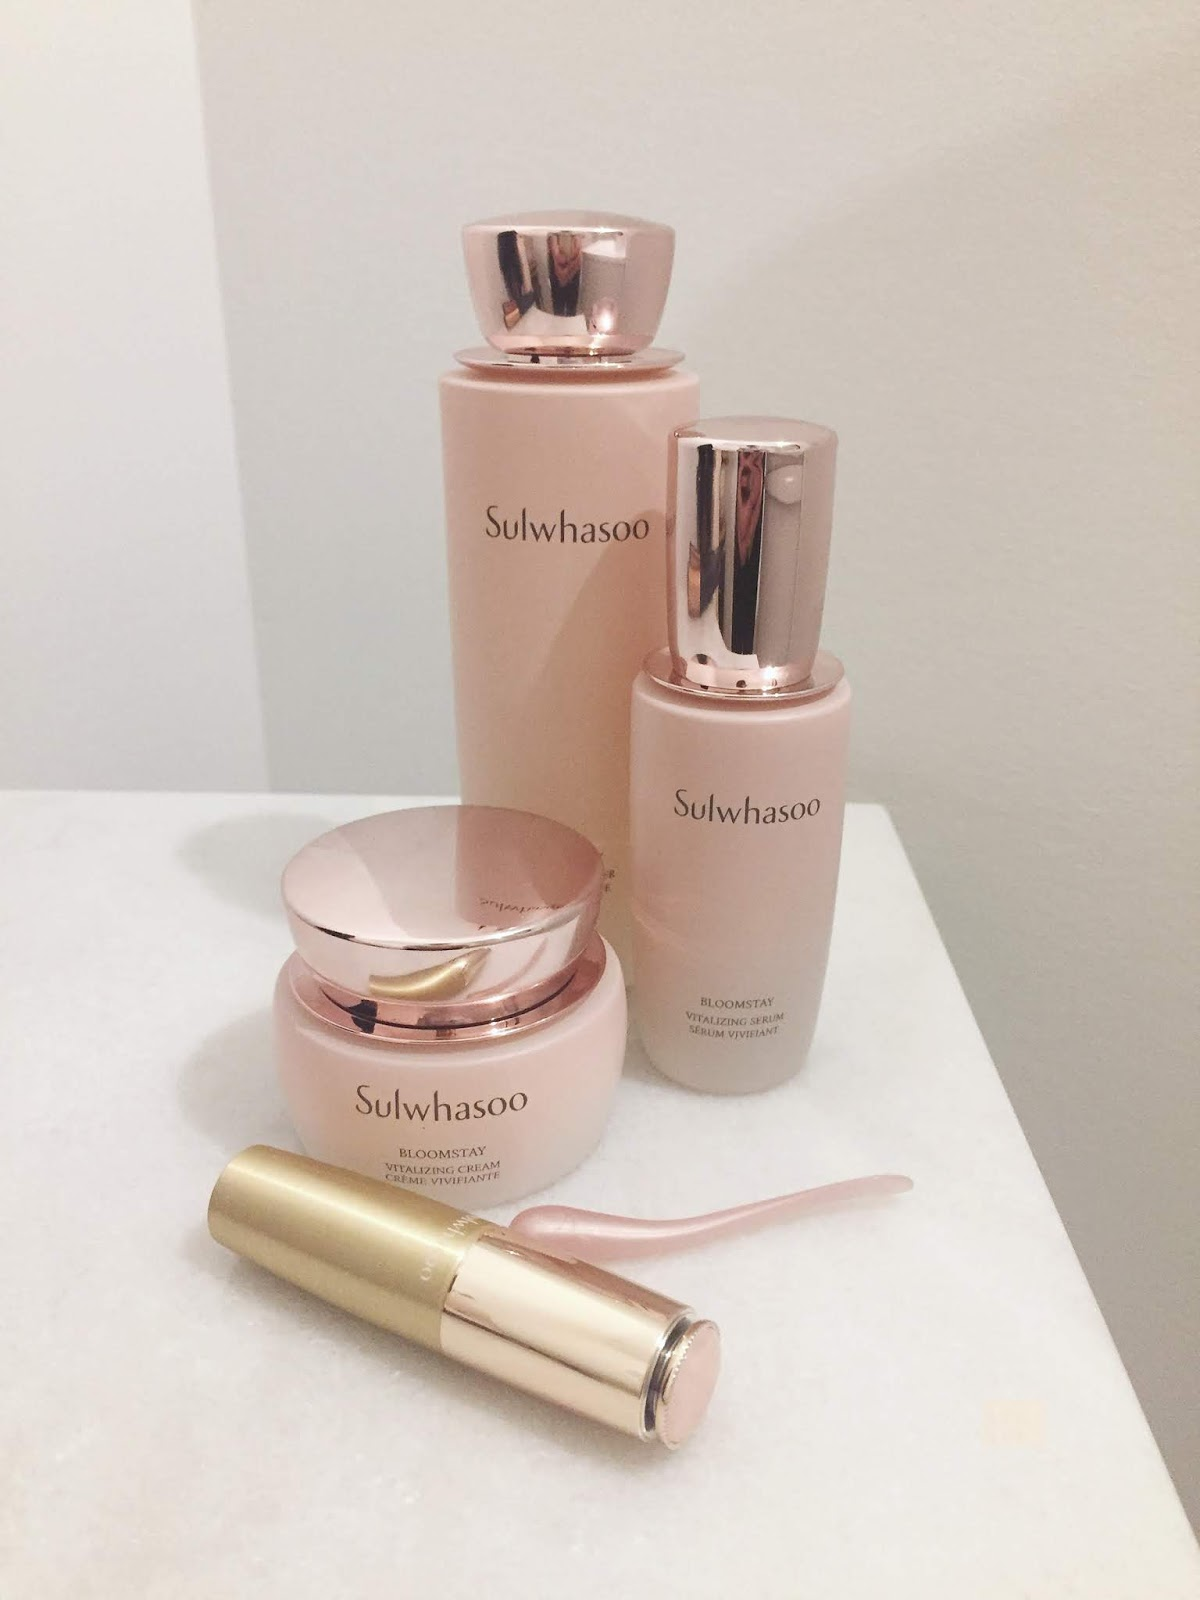 Sulwhasoo Bloomstay Collection: A quick review